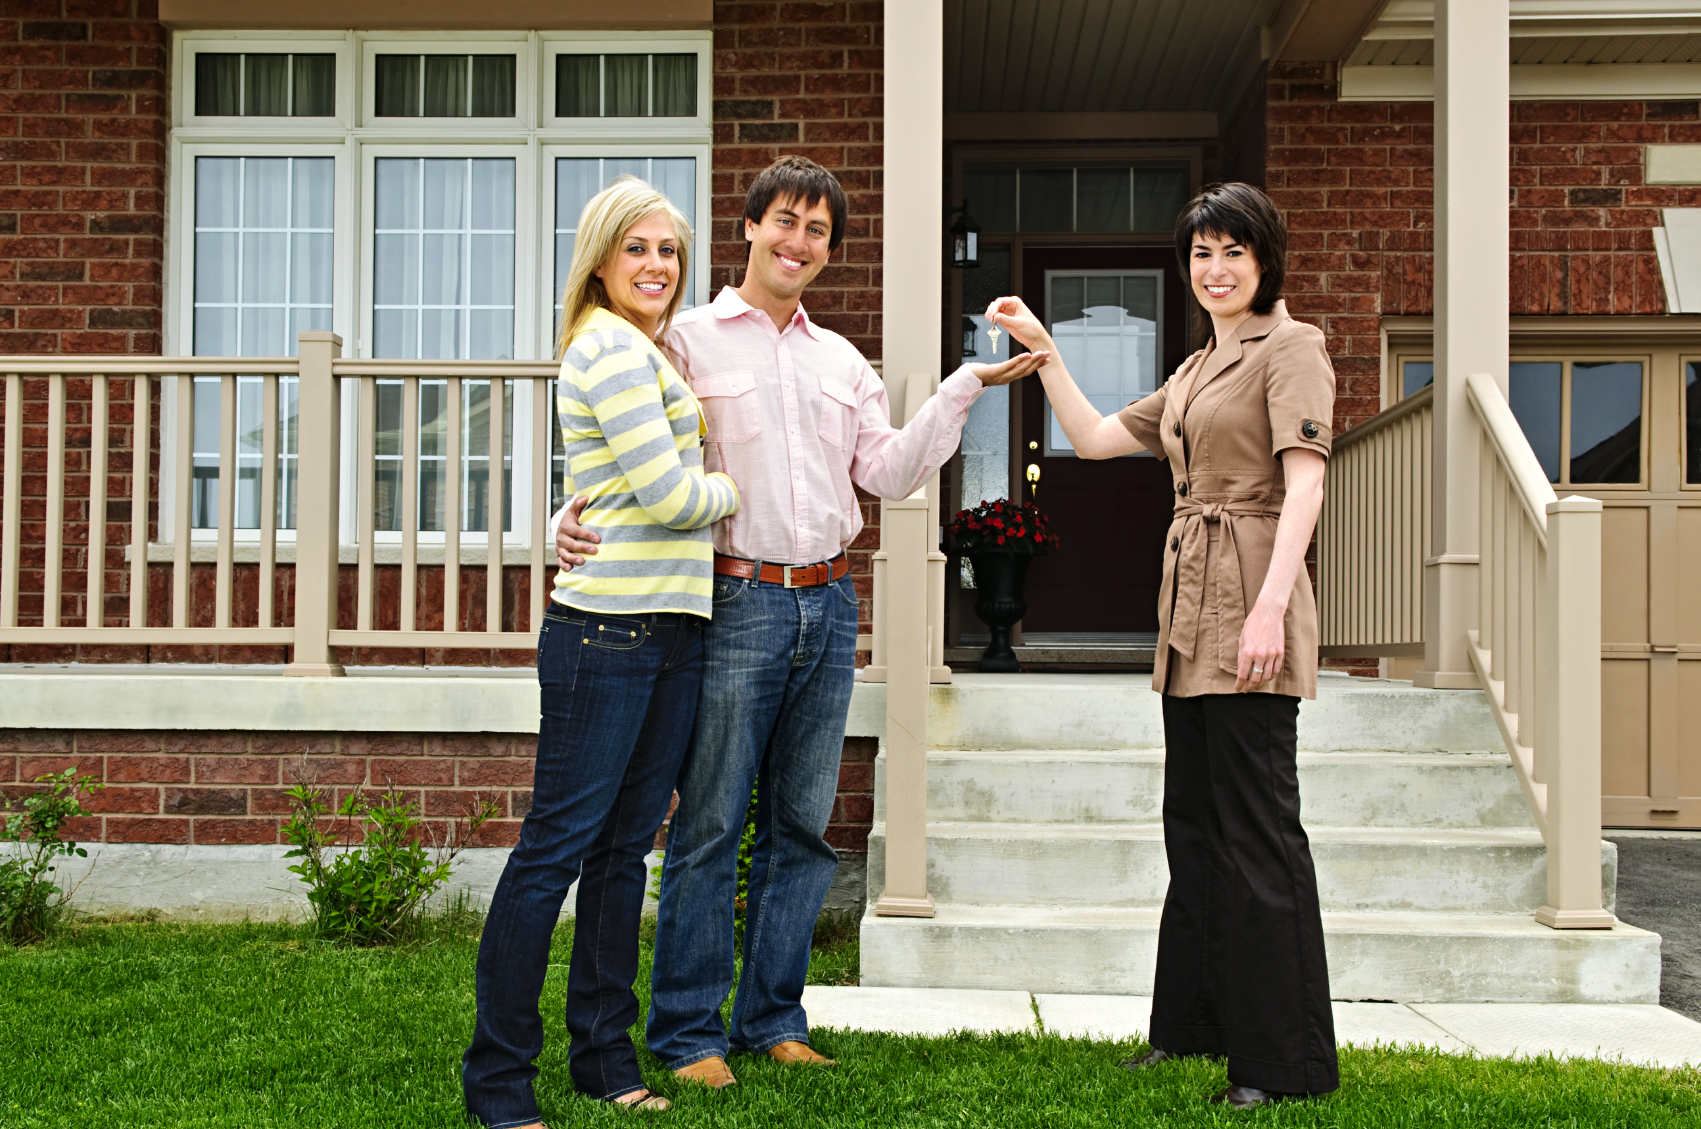 Buying Real Estate Does Not Have To Be A Difficult Process